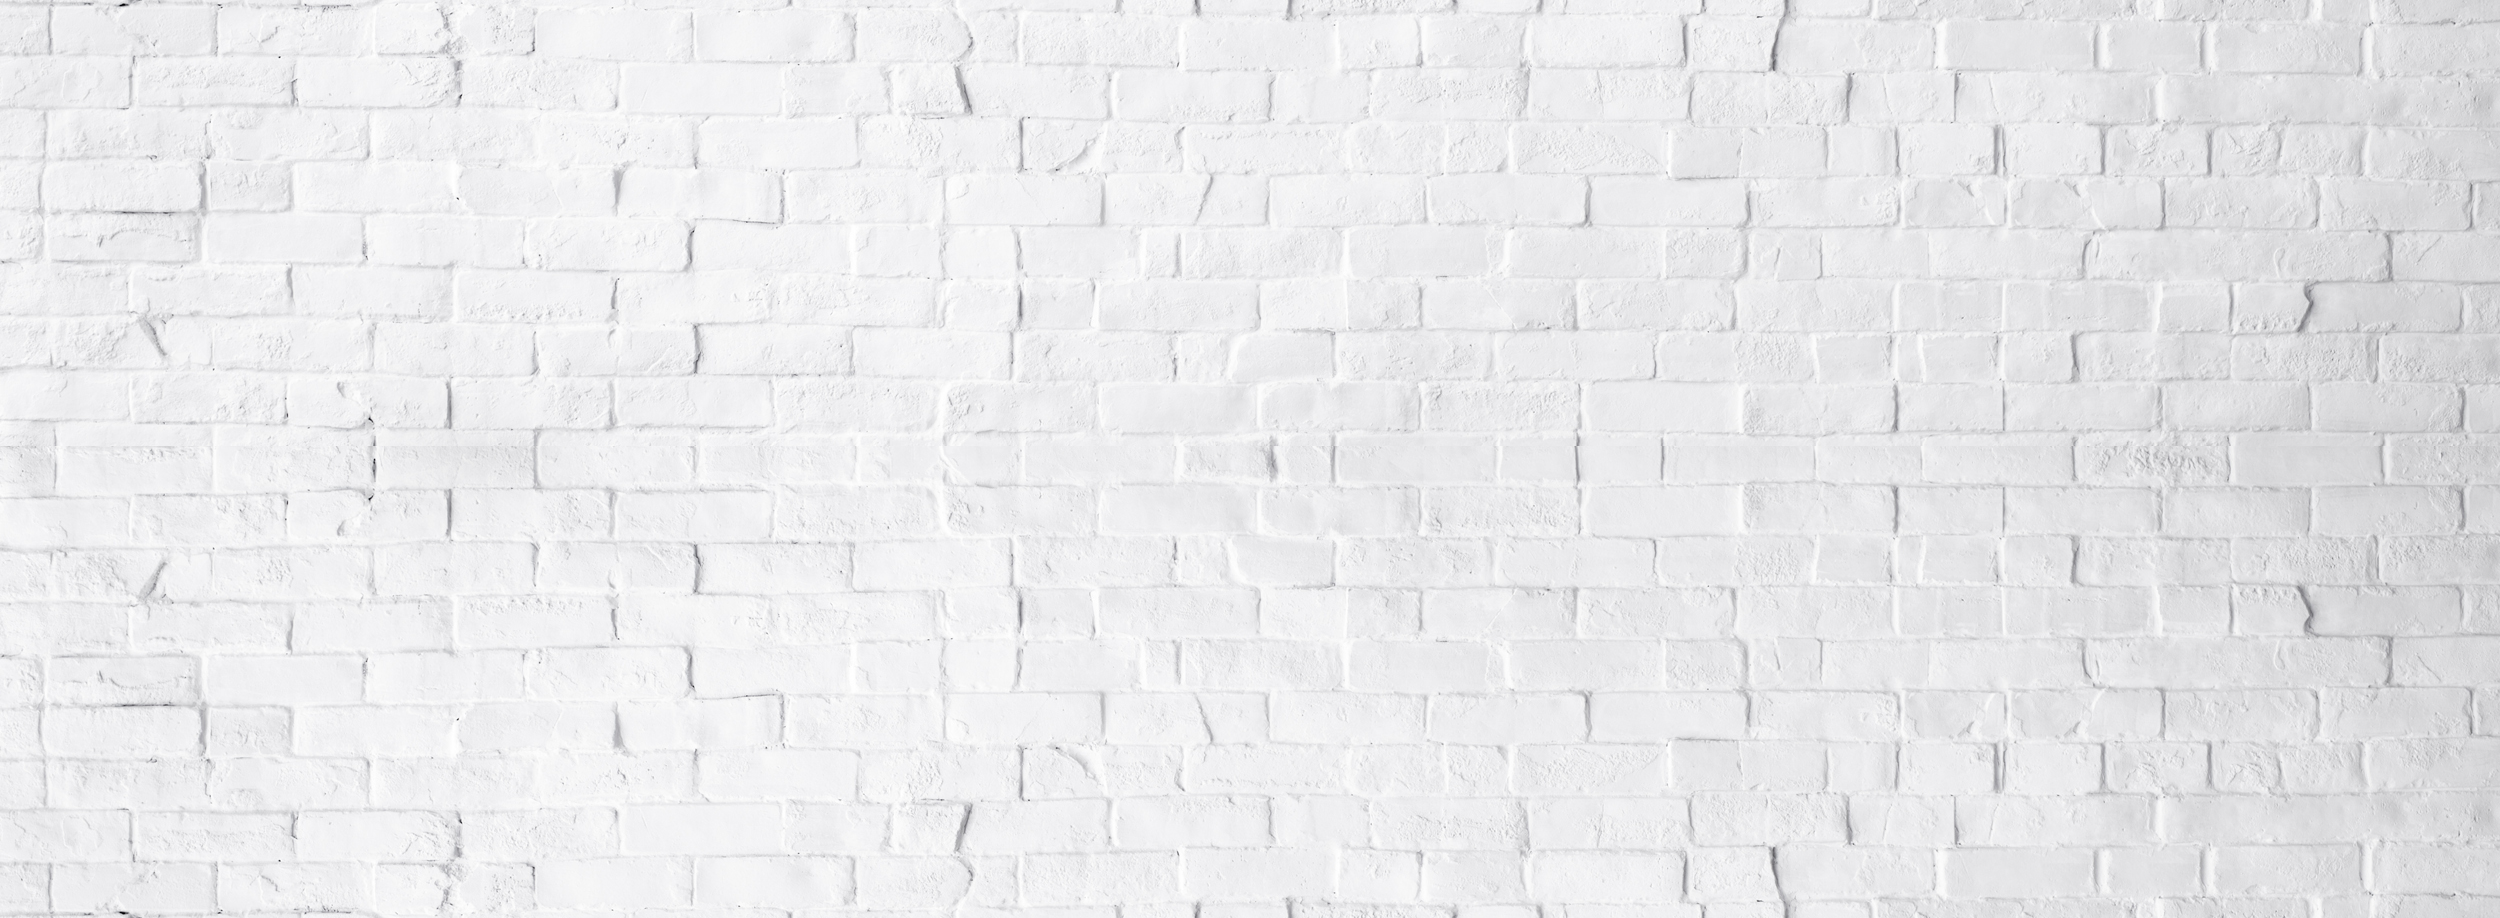 Effectiveness Big White Wall Onl 1619283 Png Images Pngio